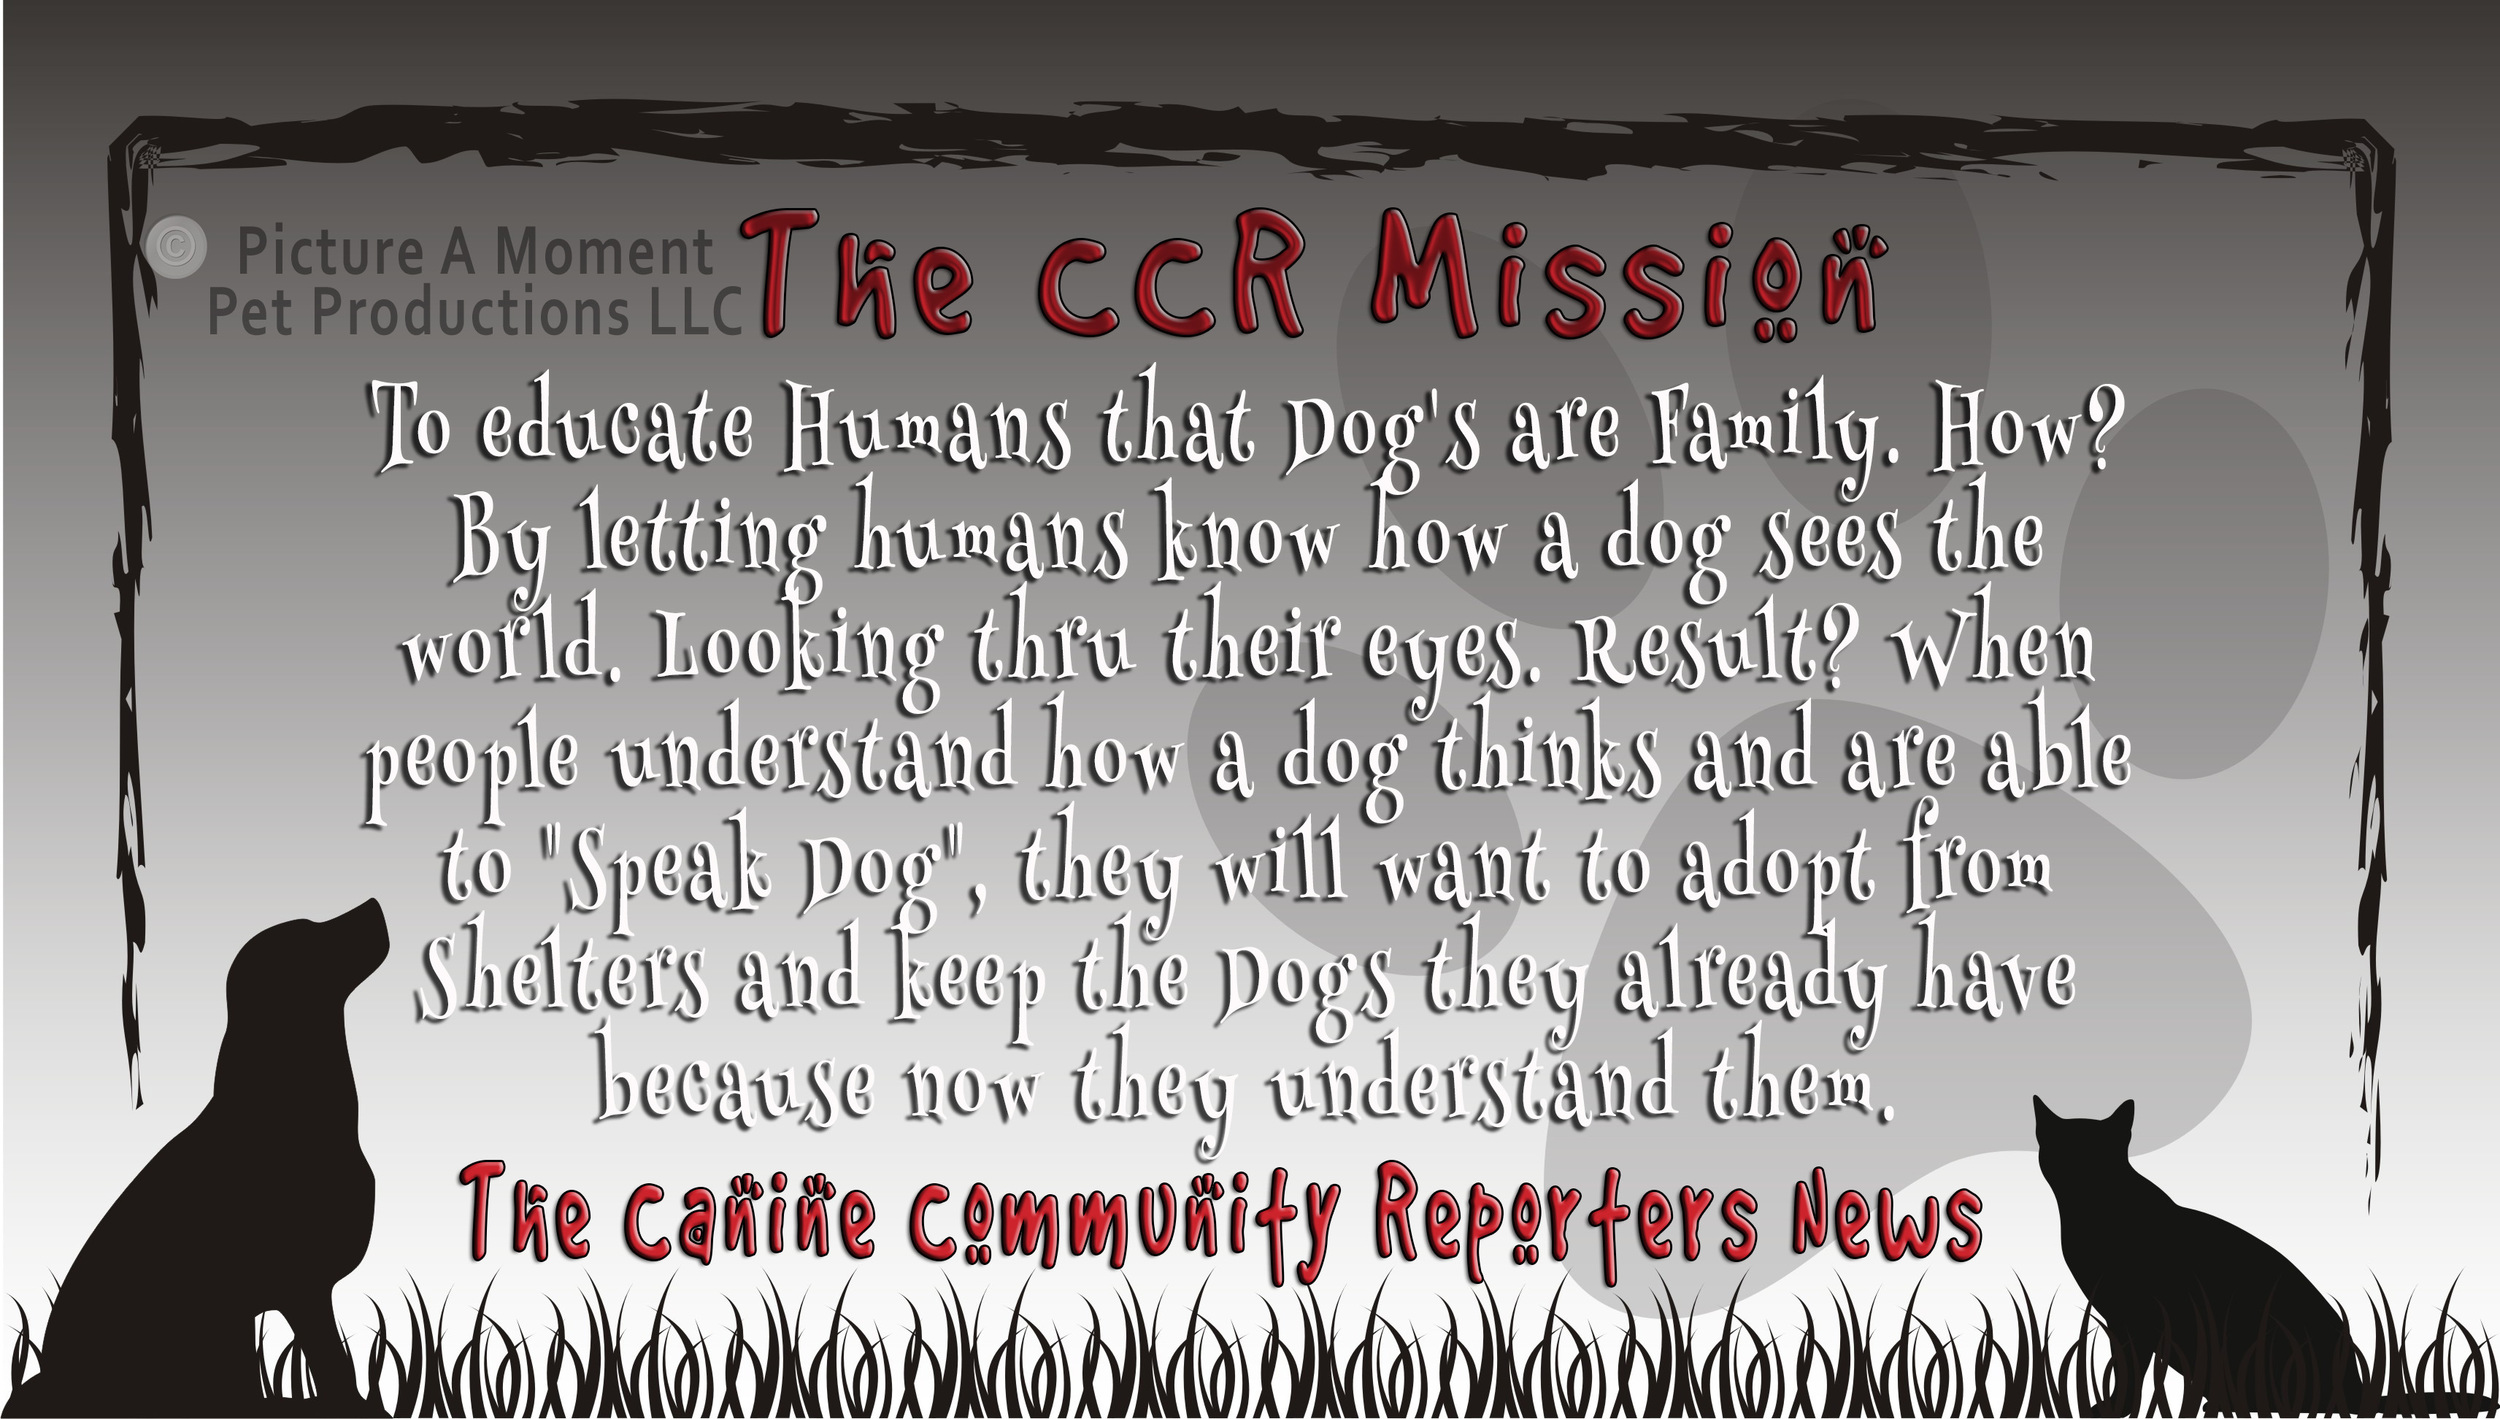 The mission statement of our Canine Community Reporters news